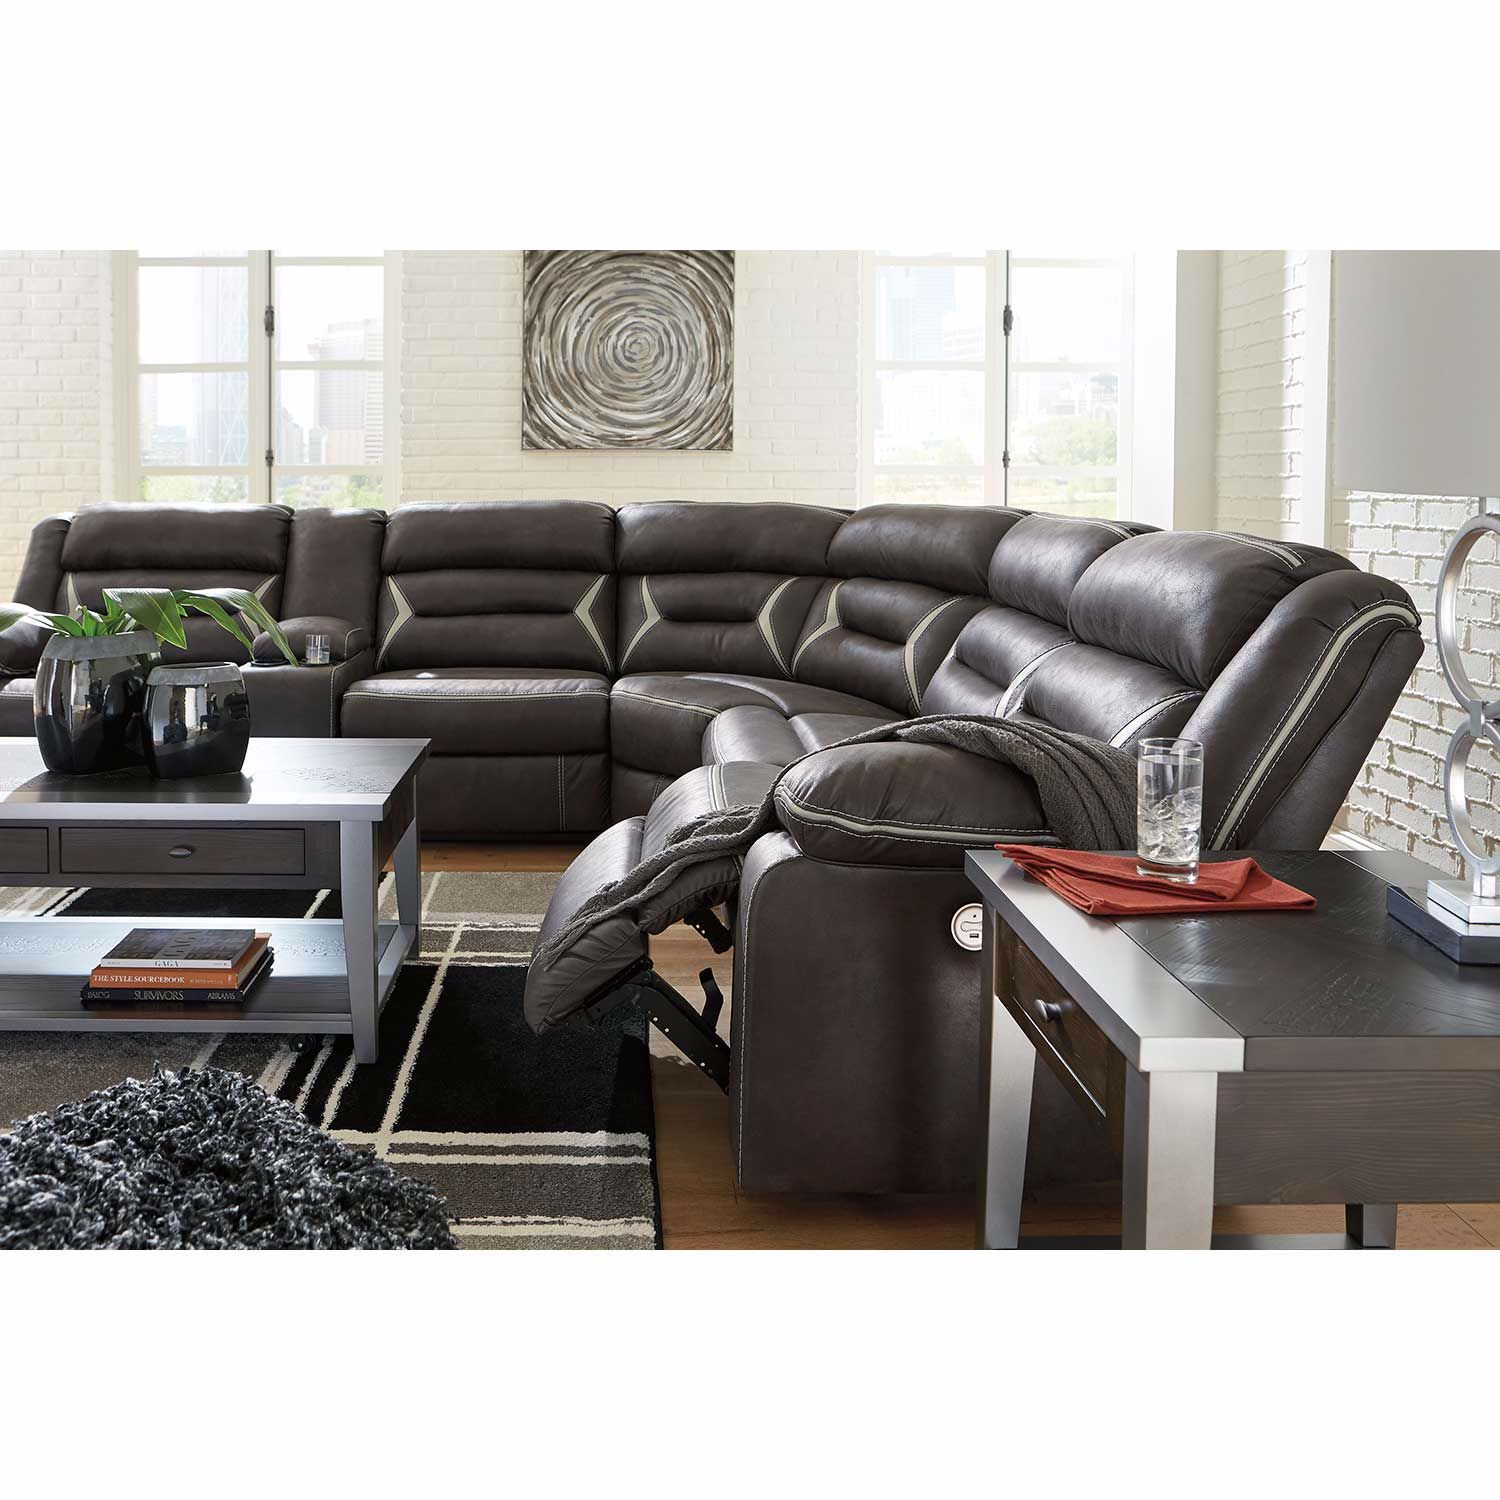 Picture of Kincord 4PC Power Recline Sectional with RAF Conso